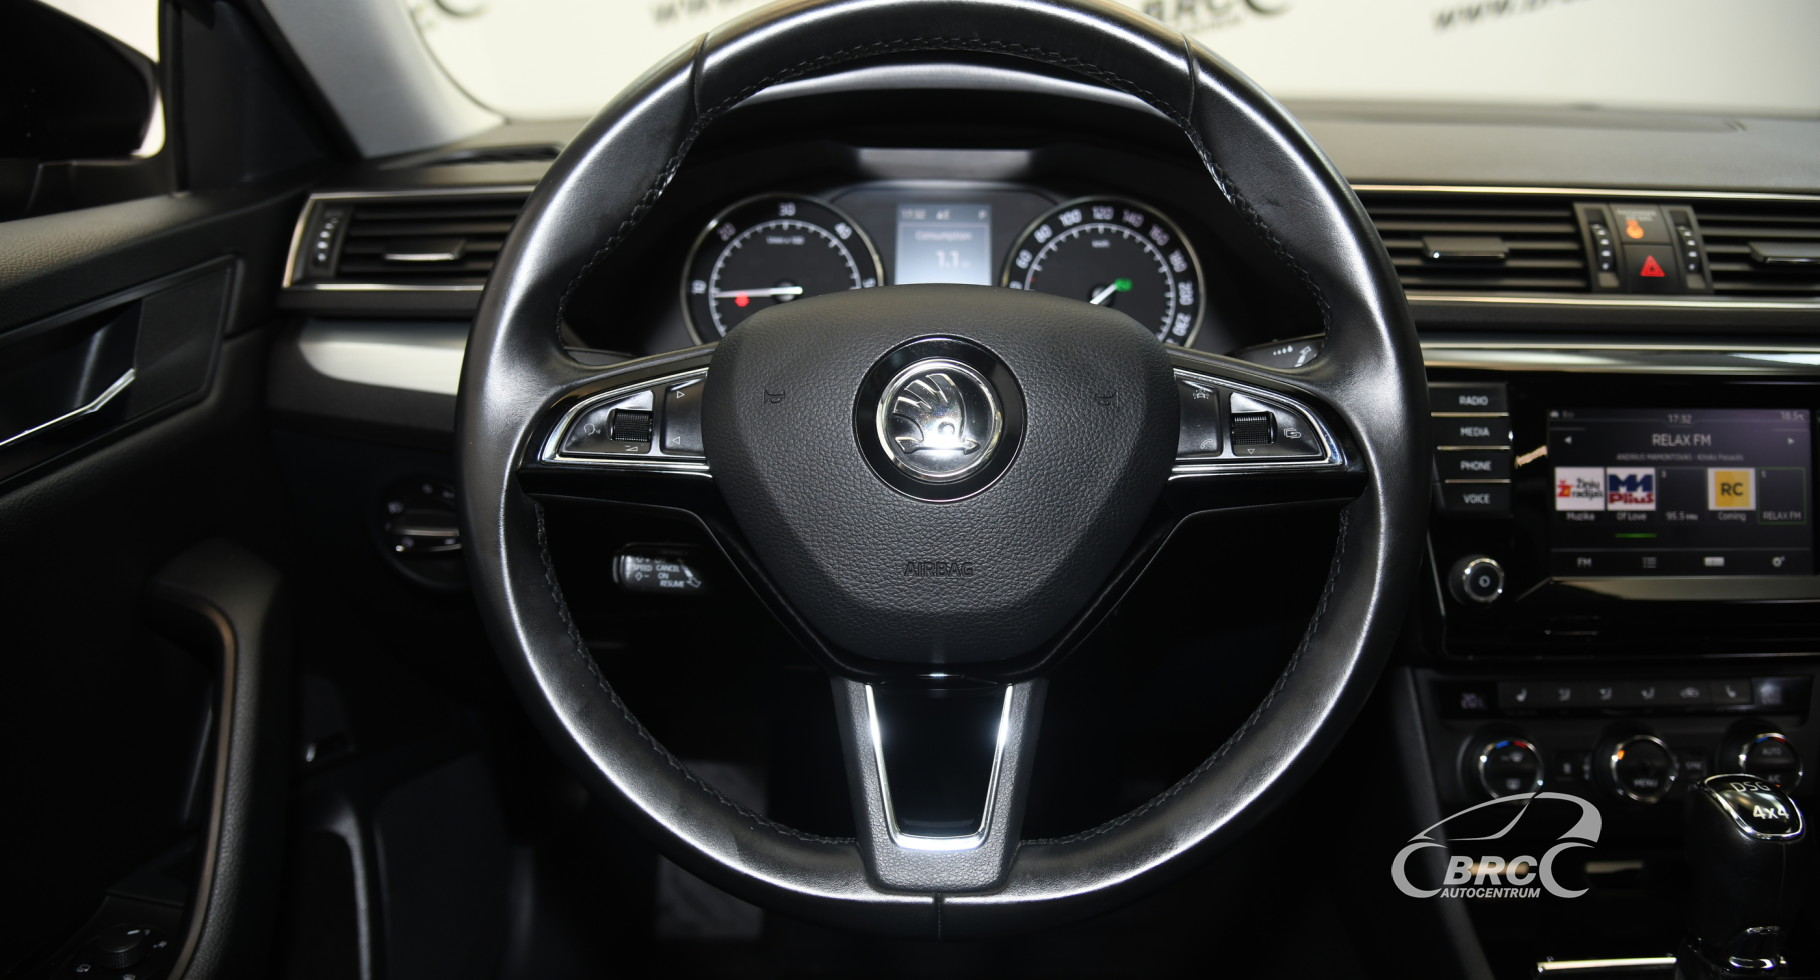 Skoda Superb 2.0 TDI 4x4 Ambition Automatas